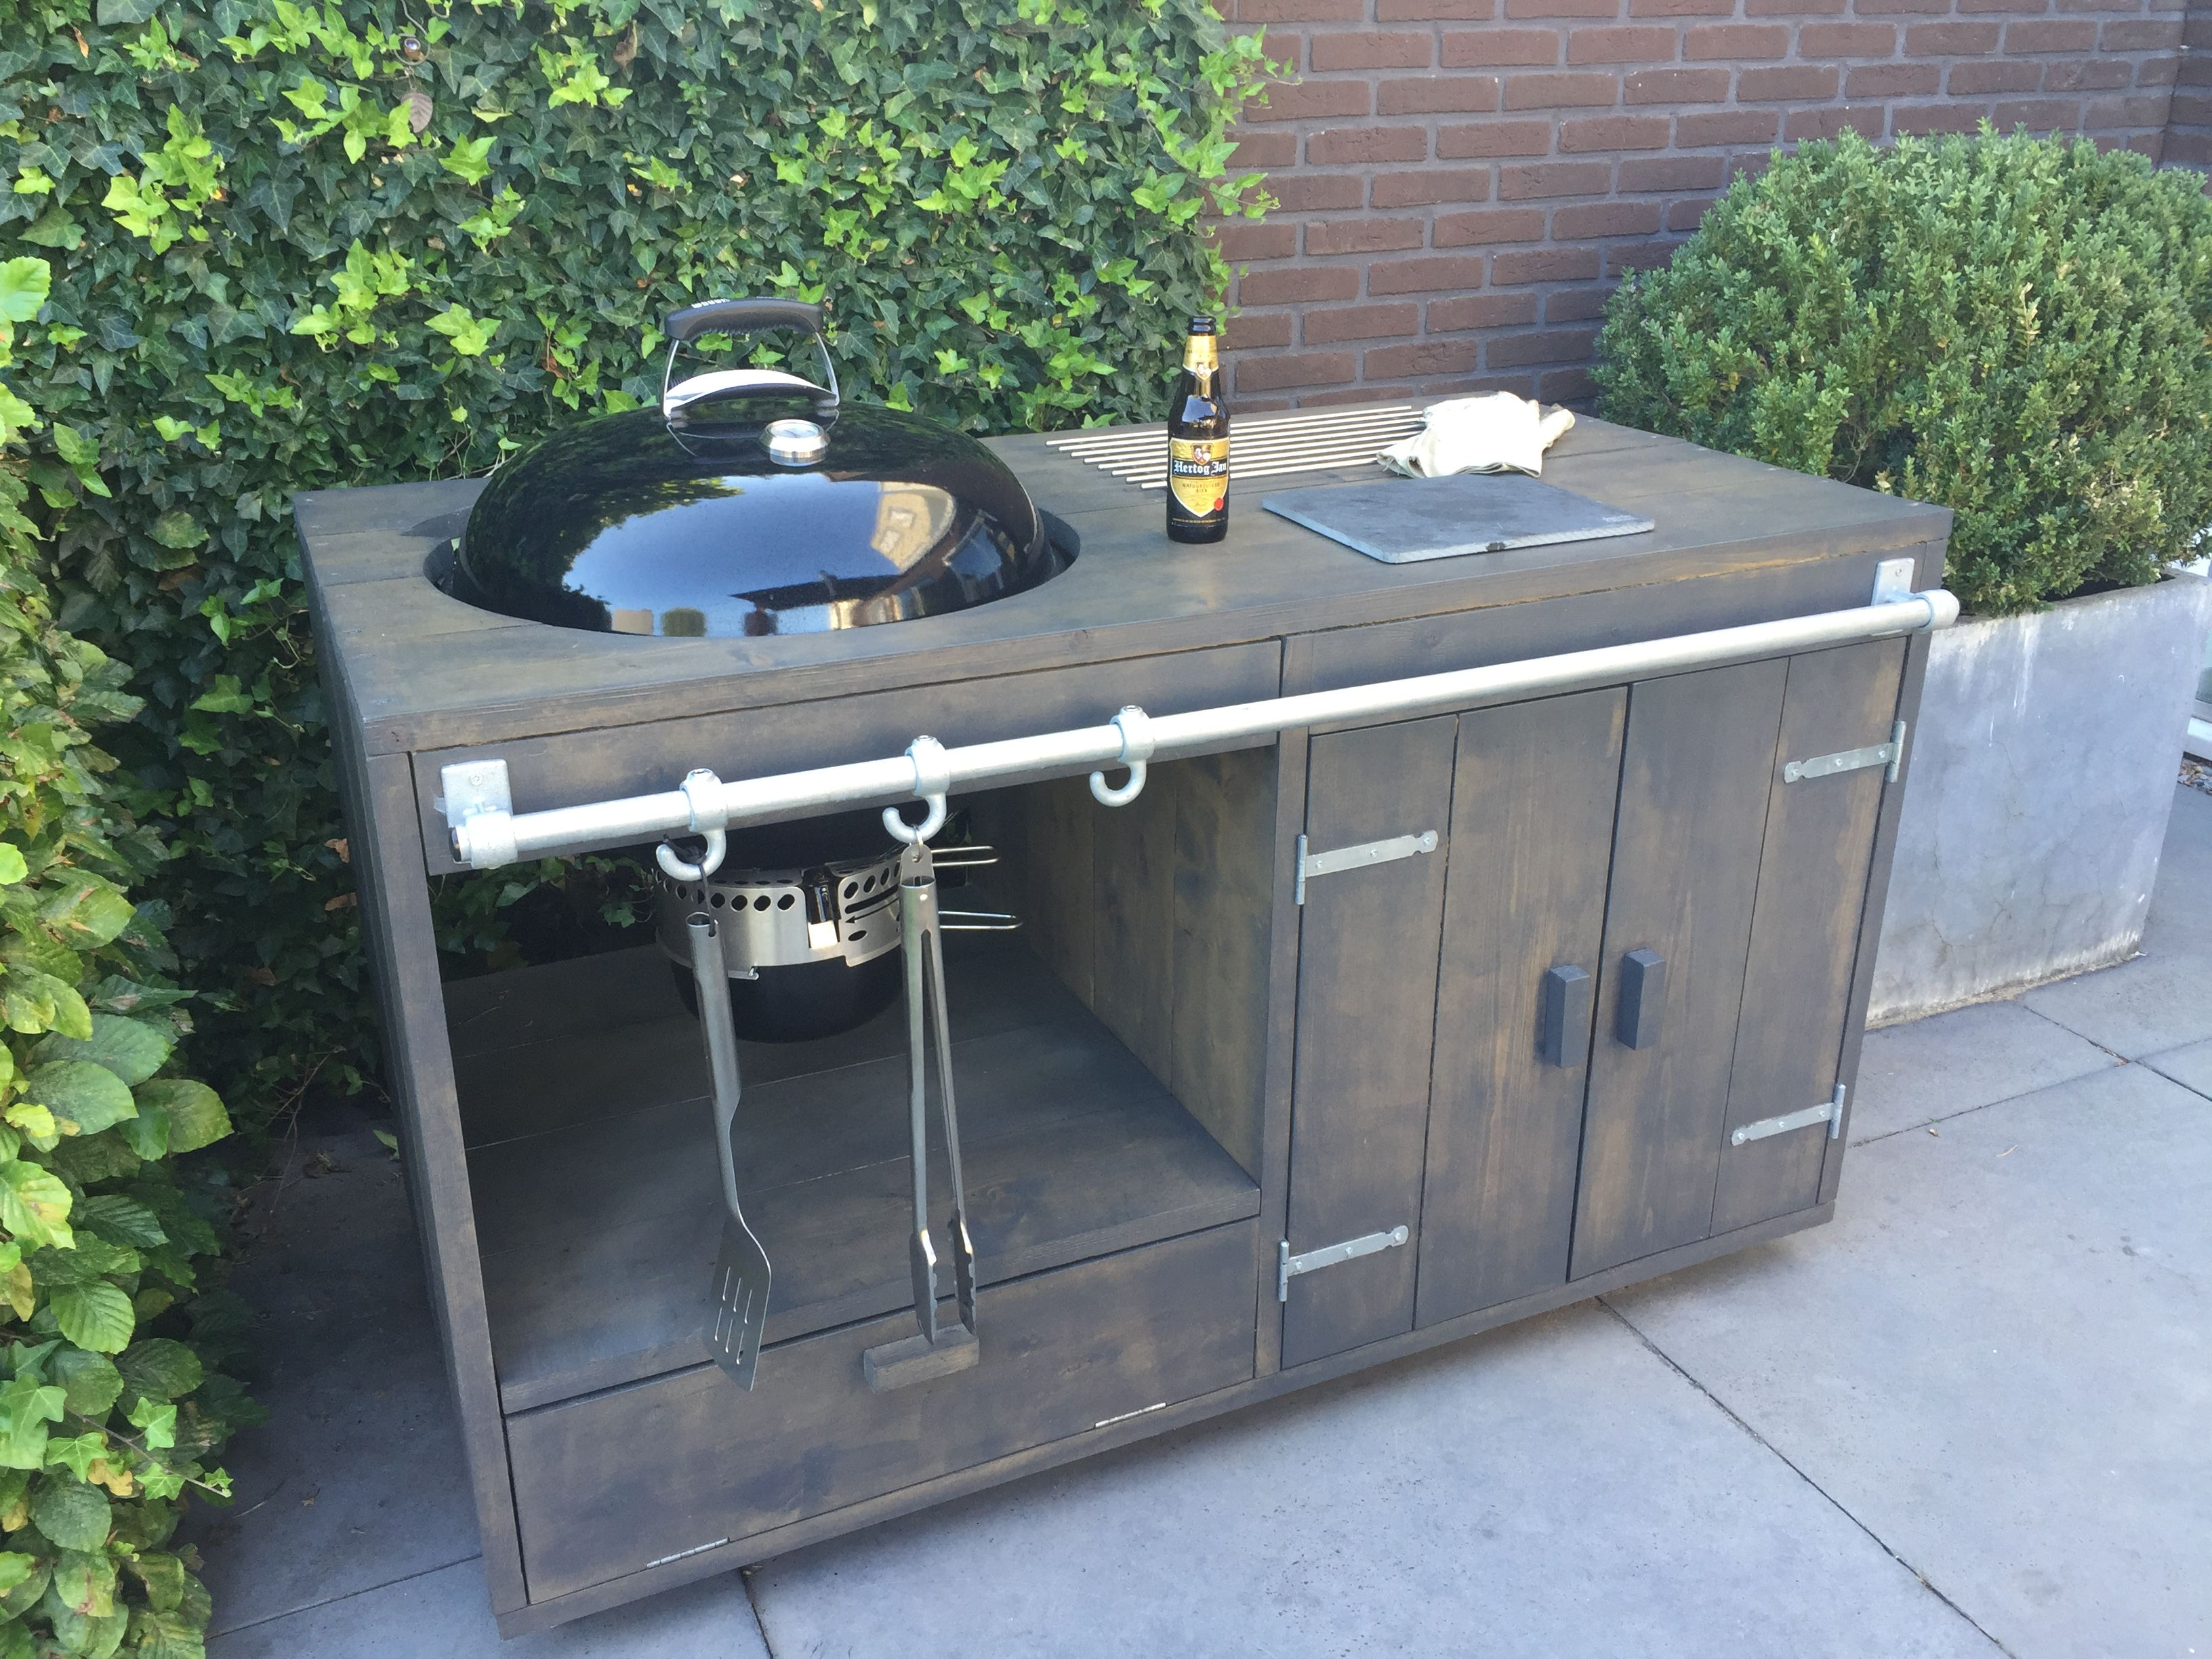 Handmade Mobile Outdoor Kitchen With A Weber Master Touch Gbs System Edition Bbq Buitenkeuken Buitenkeukens